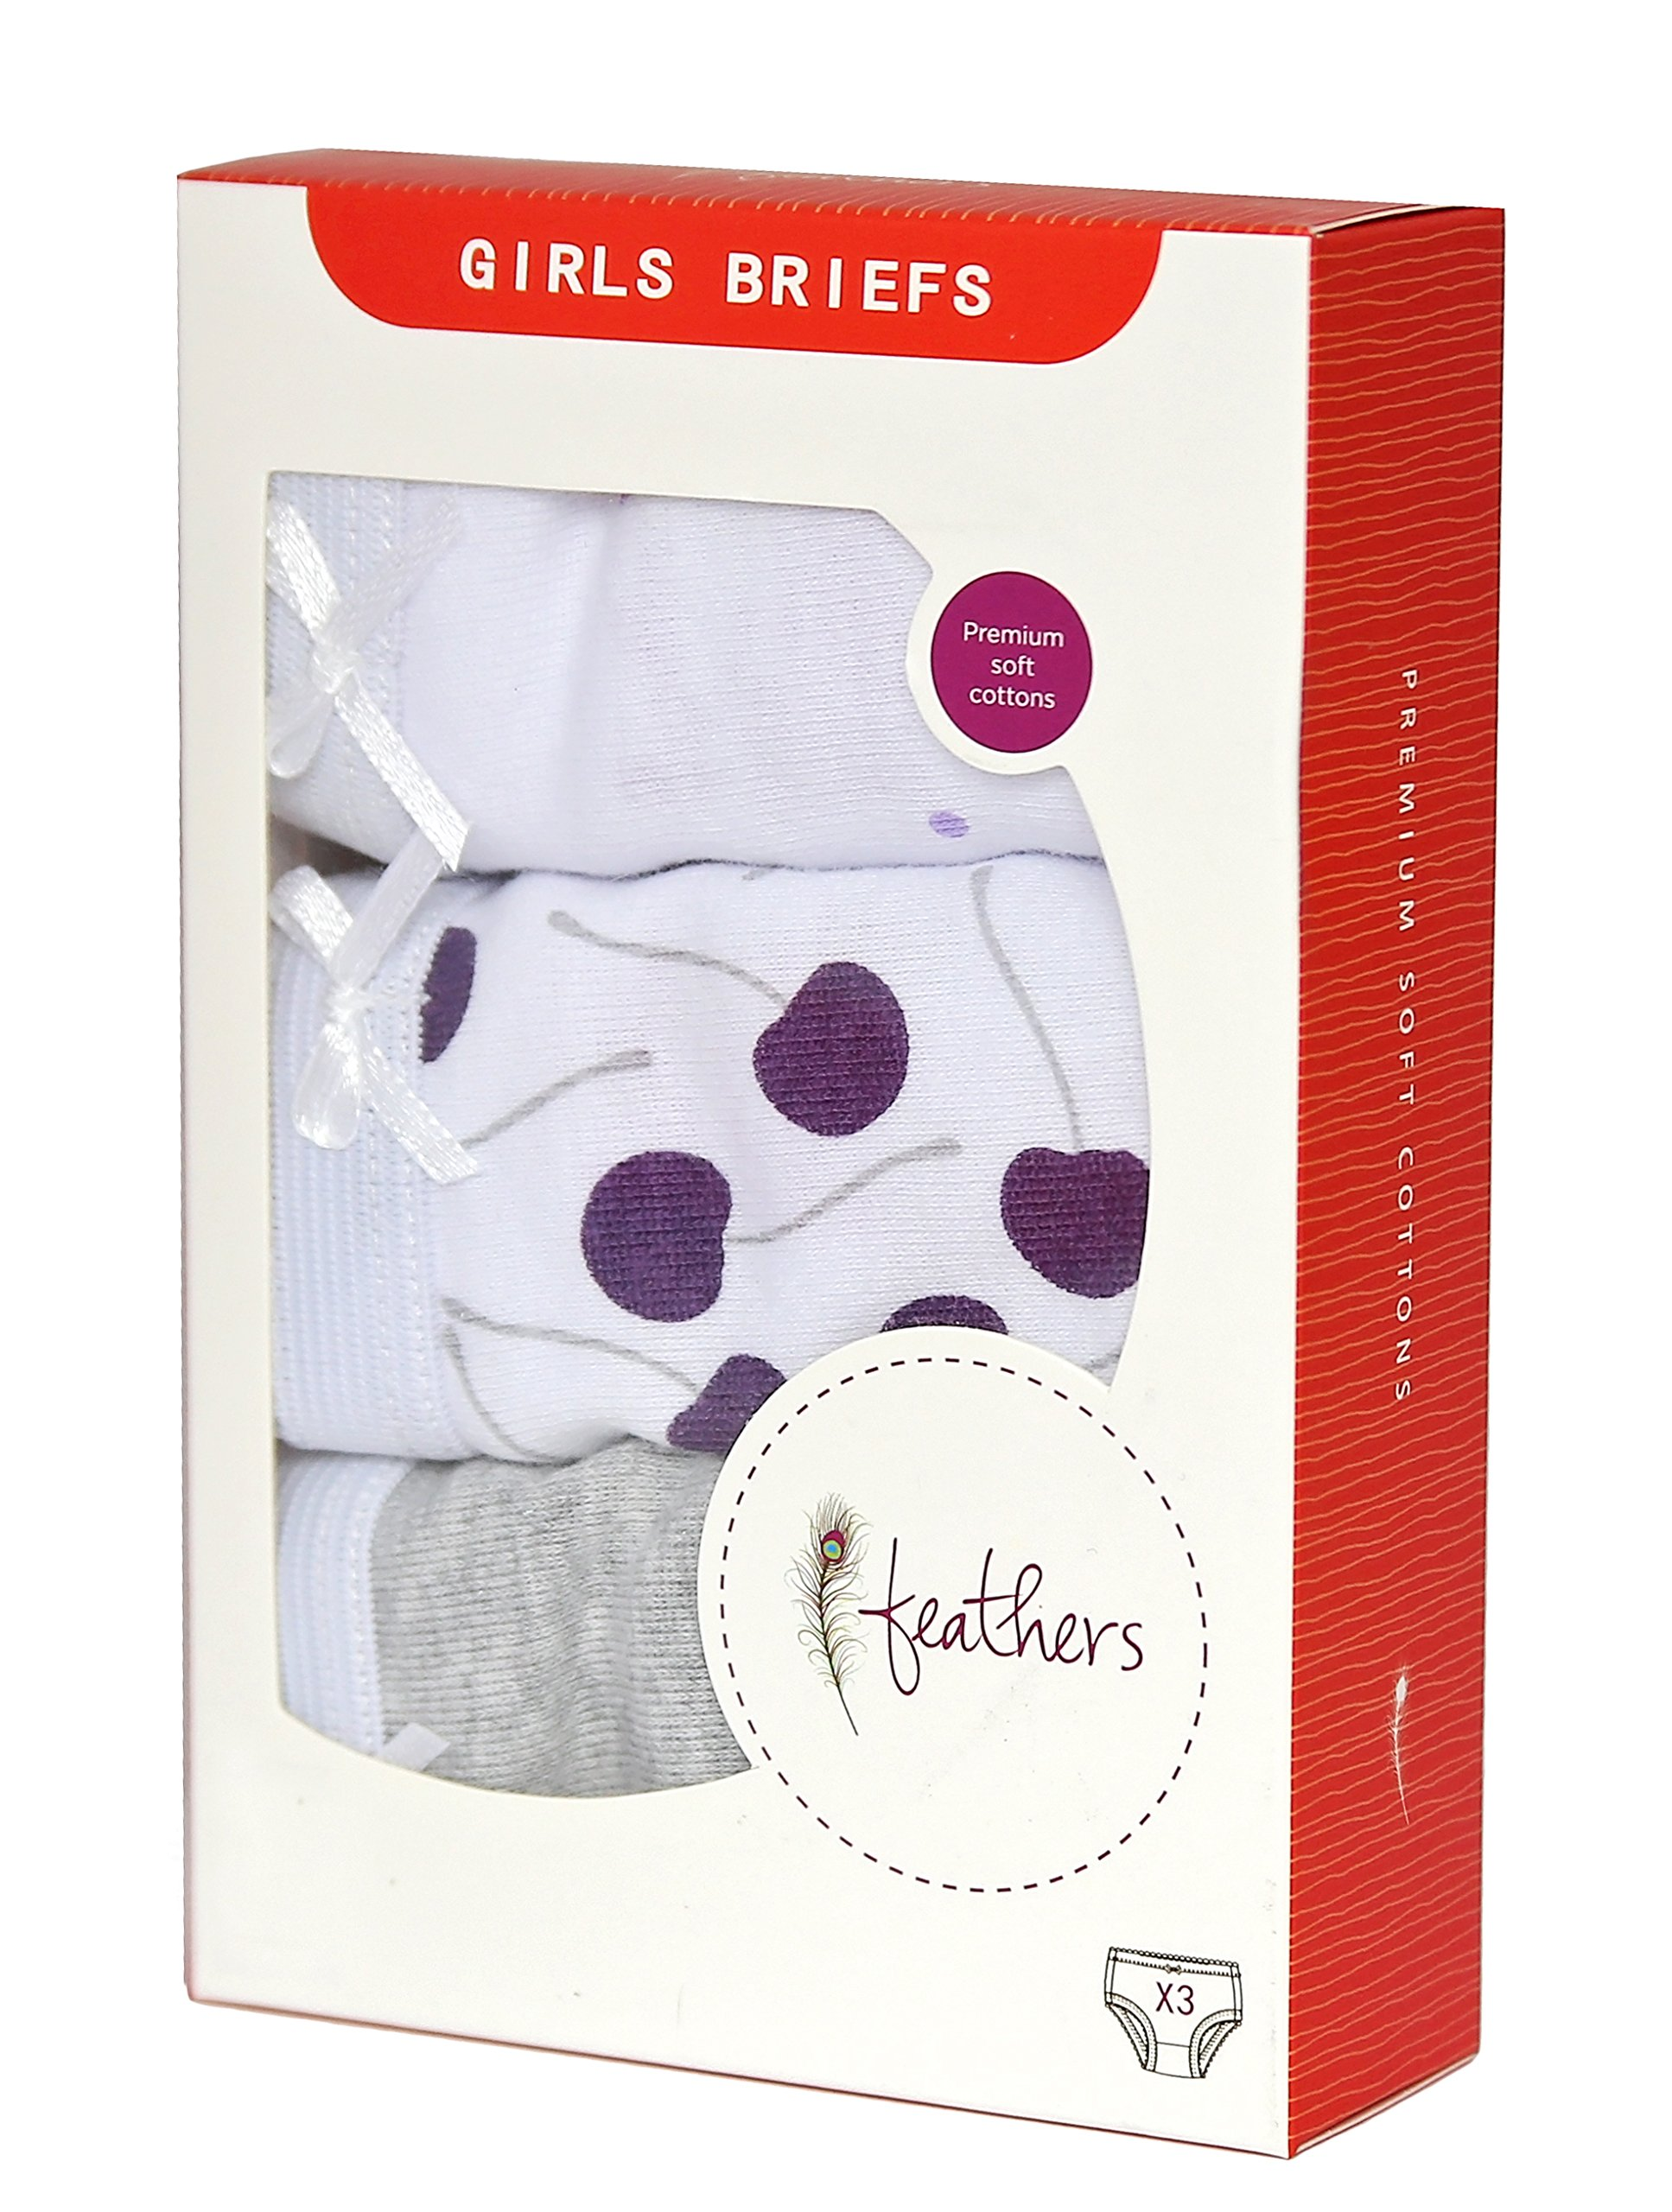 Feathers Girls Cherry print Tagless Briefs Underwear Super Soft Panties 3-Pack Cherry Print 10